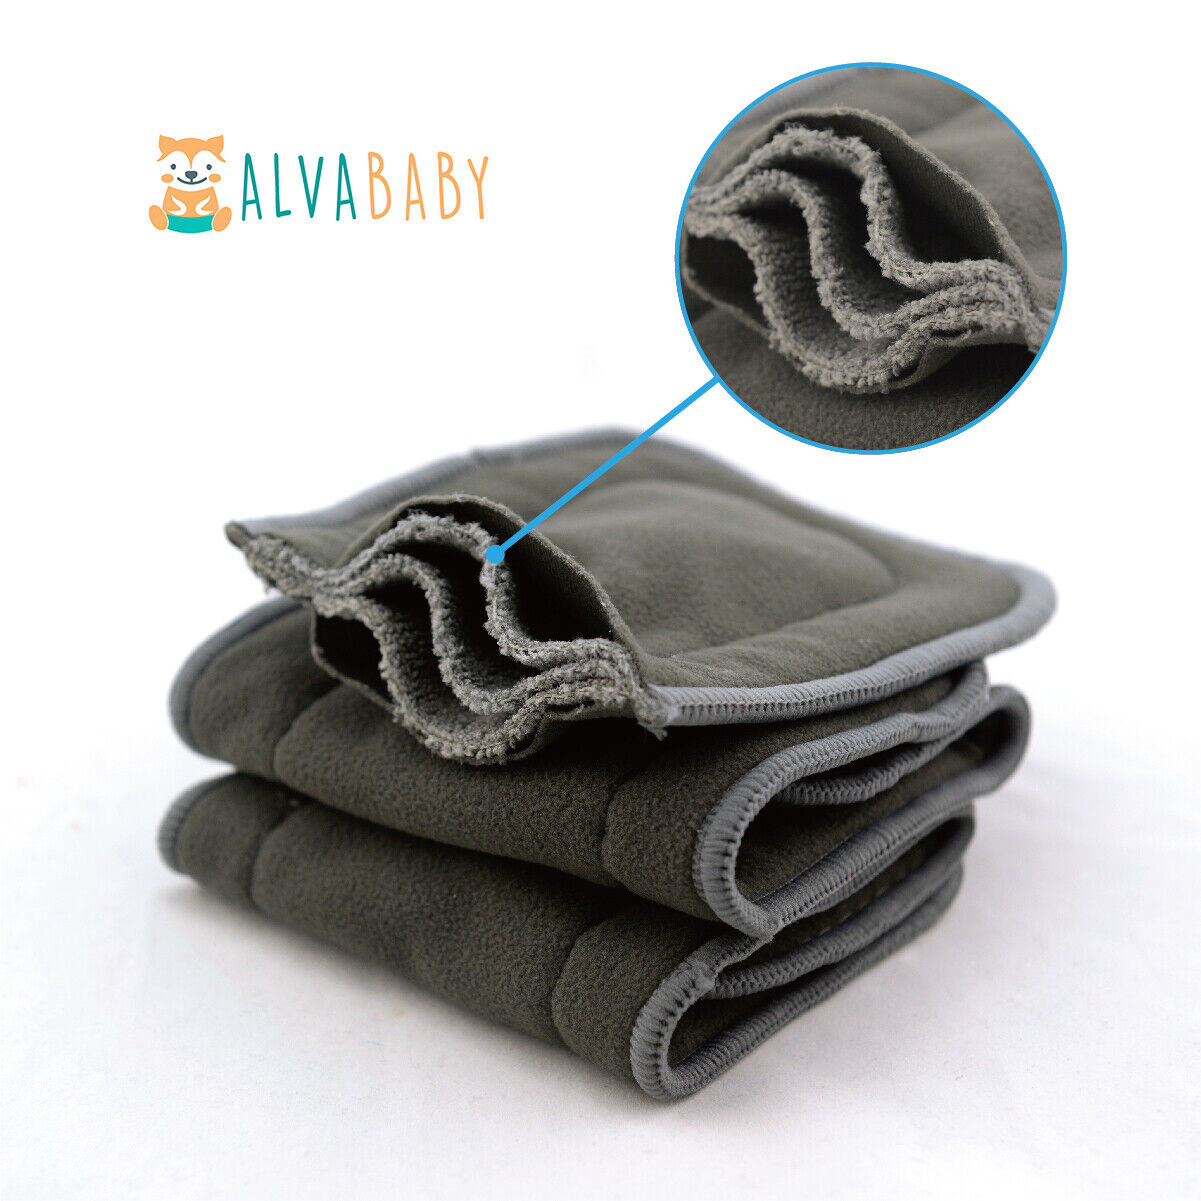 ALVABABY Cloth Diapers One Size Reusable Washable Pocket Nappy + Insert U Pick With 1 5layers charcoal bamboo insert